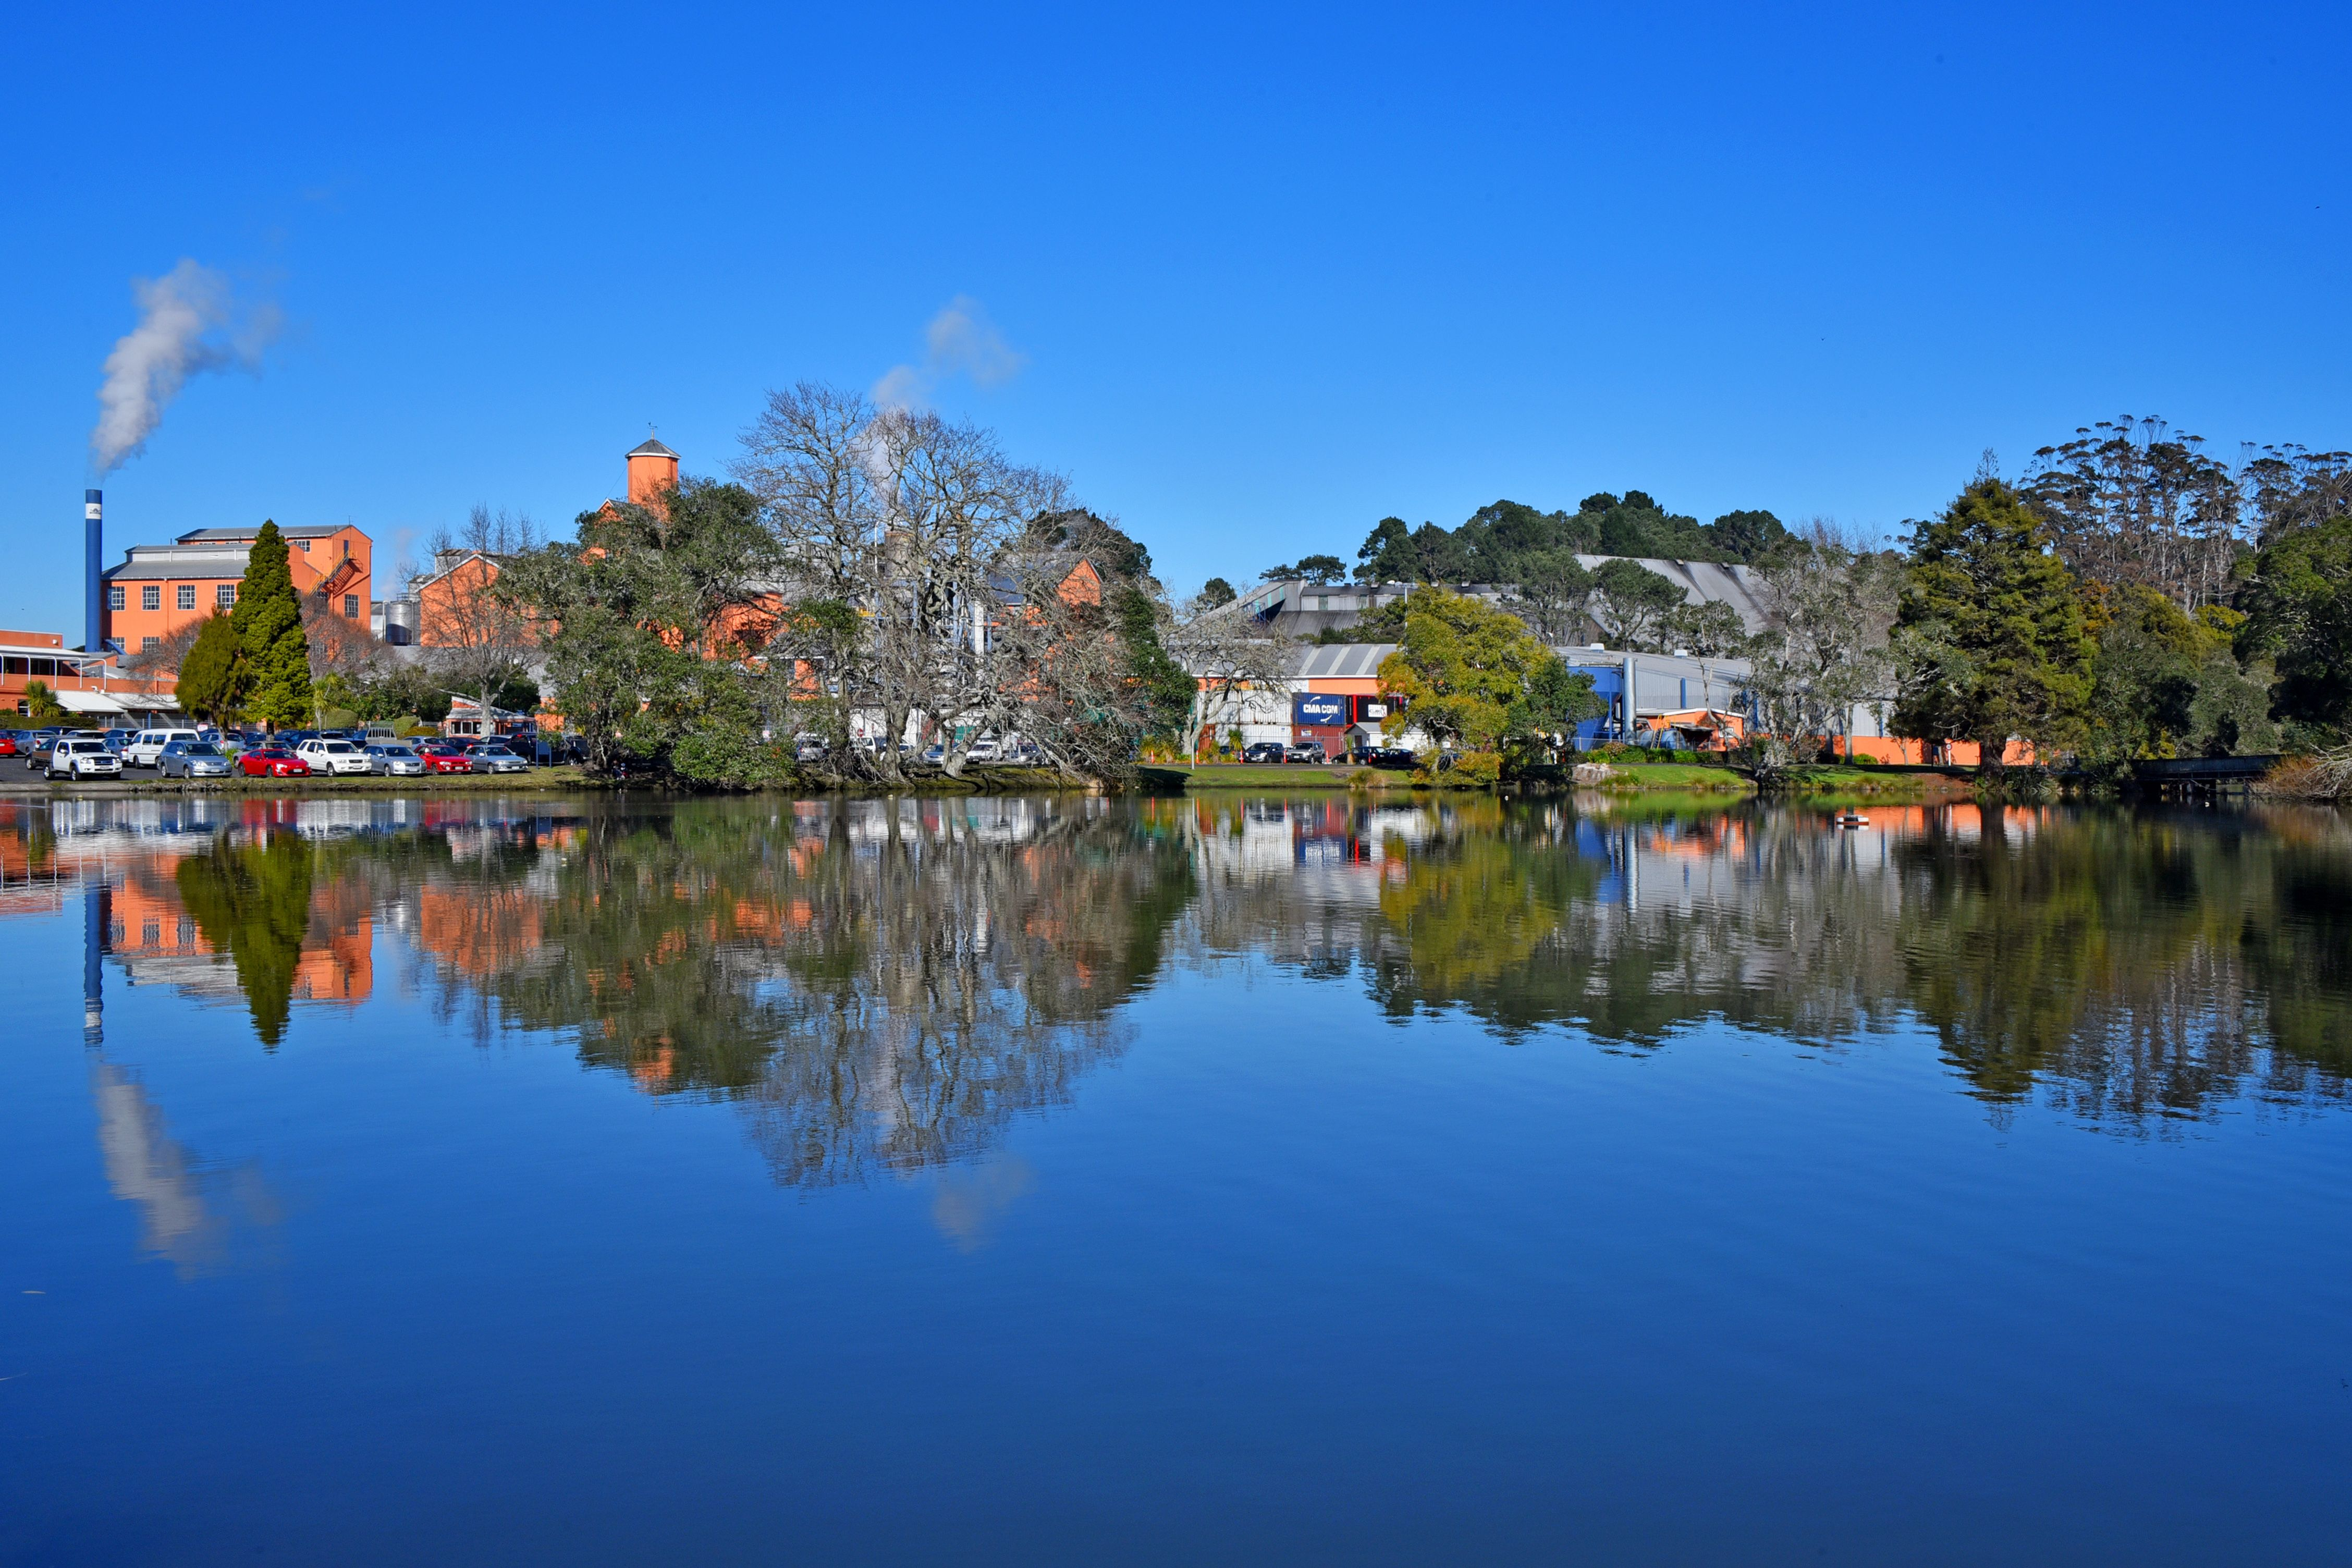 View of the sugar works over duck pond. Blue day on